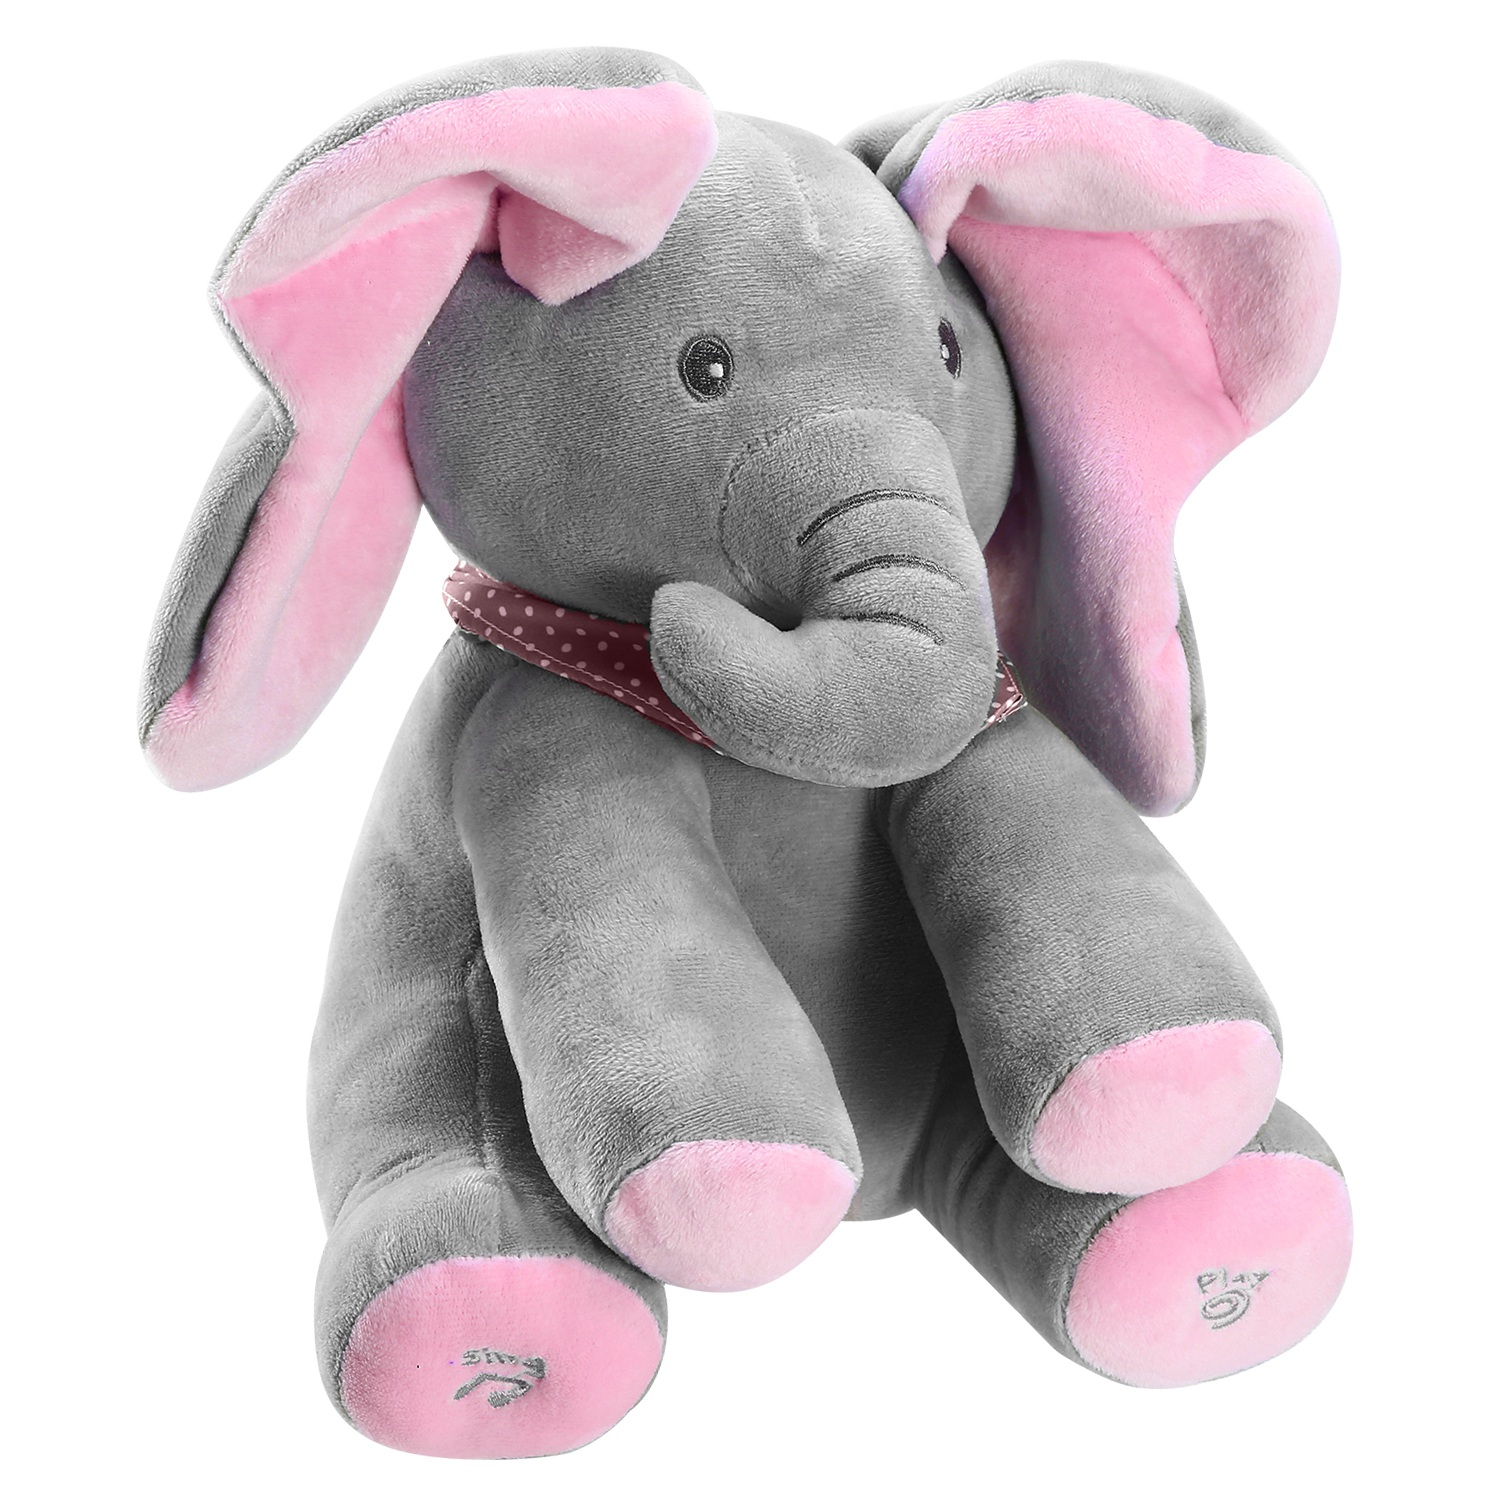 Elephant Stuffed Doll Toys Kids Gift Animated Talking Singing Plush